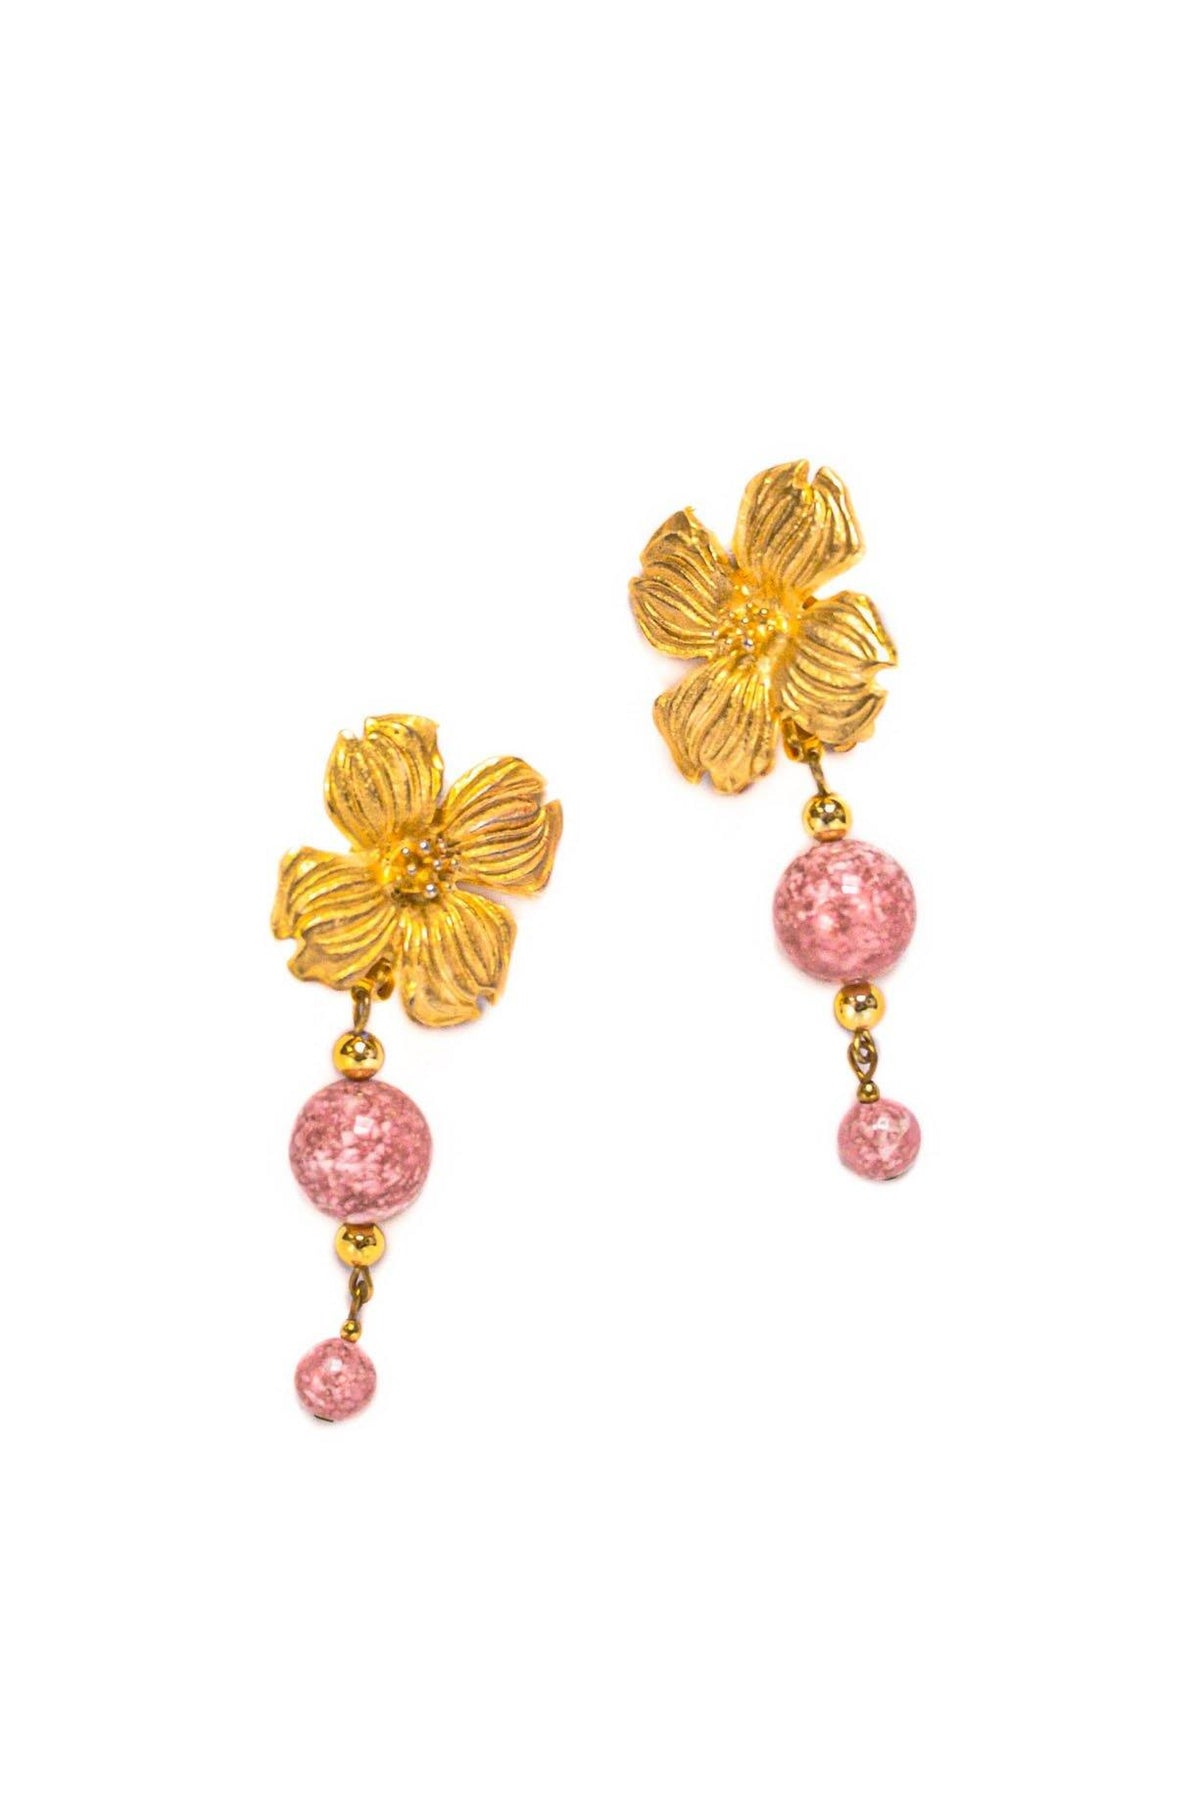 Vintage Statement Pink Floral Drop Clip-on Earrings from Sweet and Spark